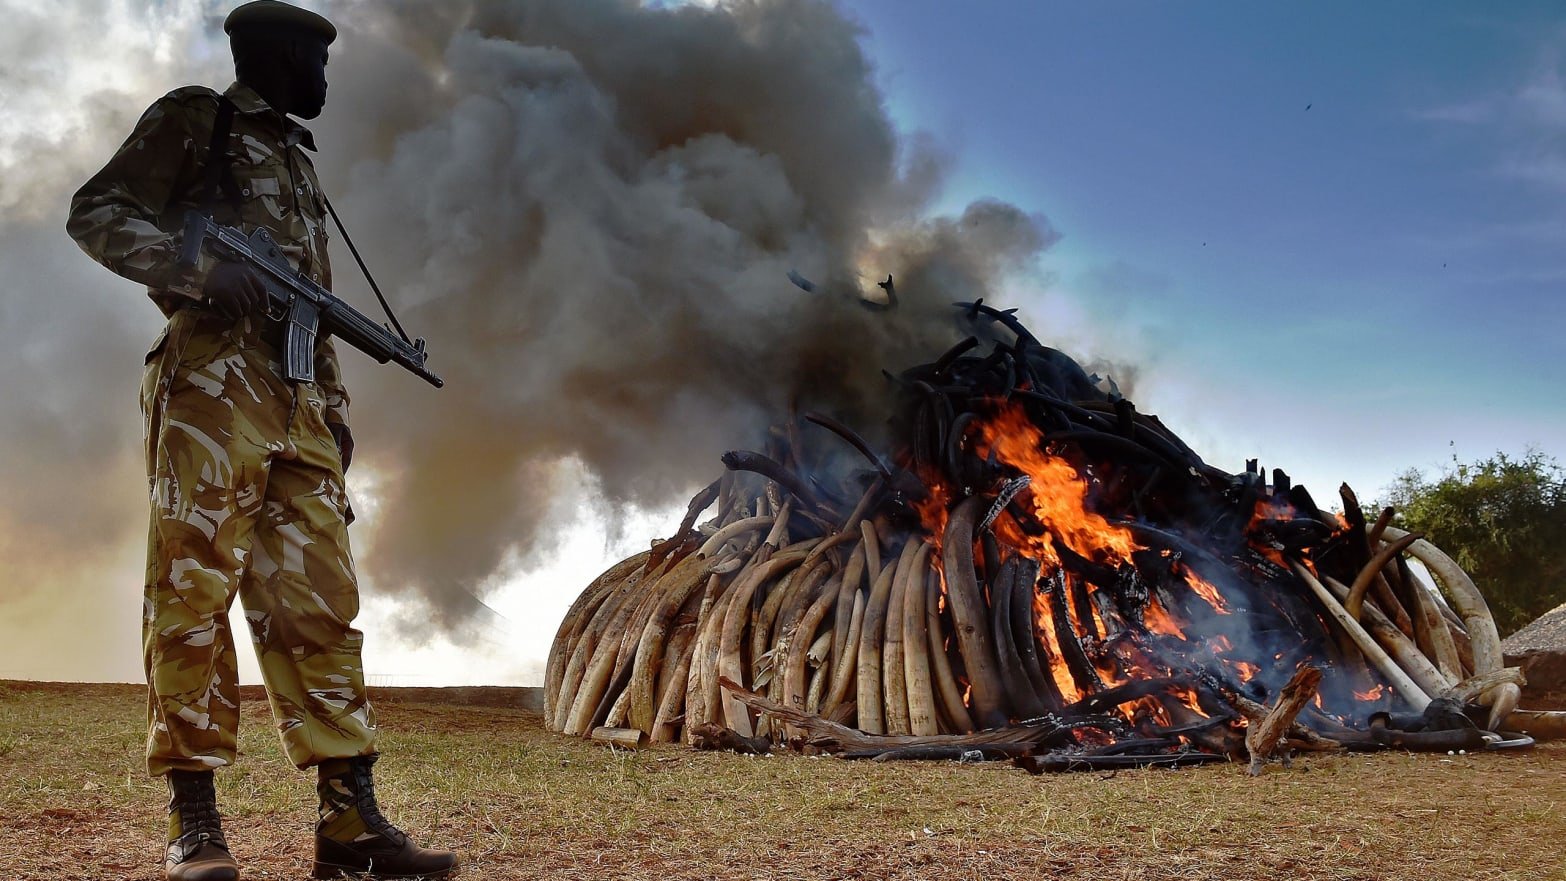 rachel nuwer poached anti poaching hunt hunting elephant ivory tiger tusk pangolin climate change